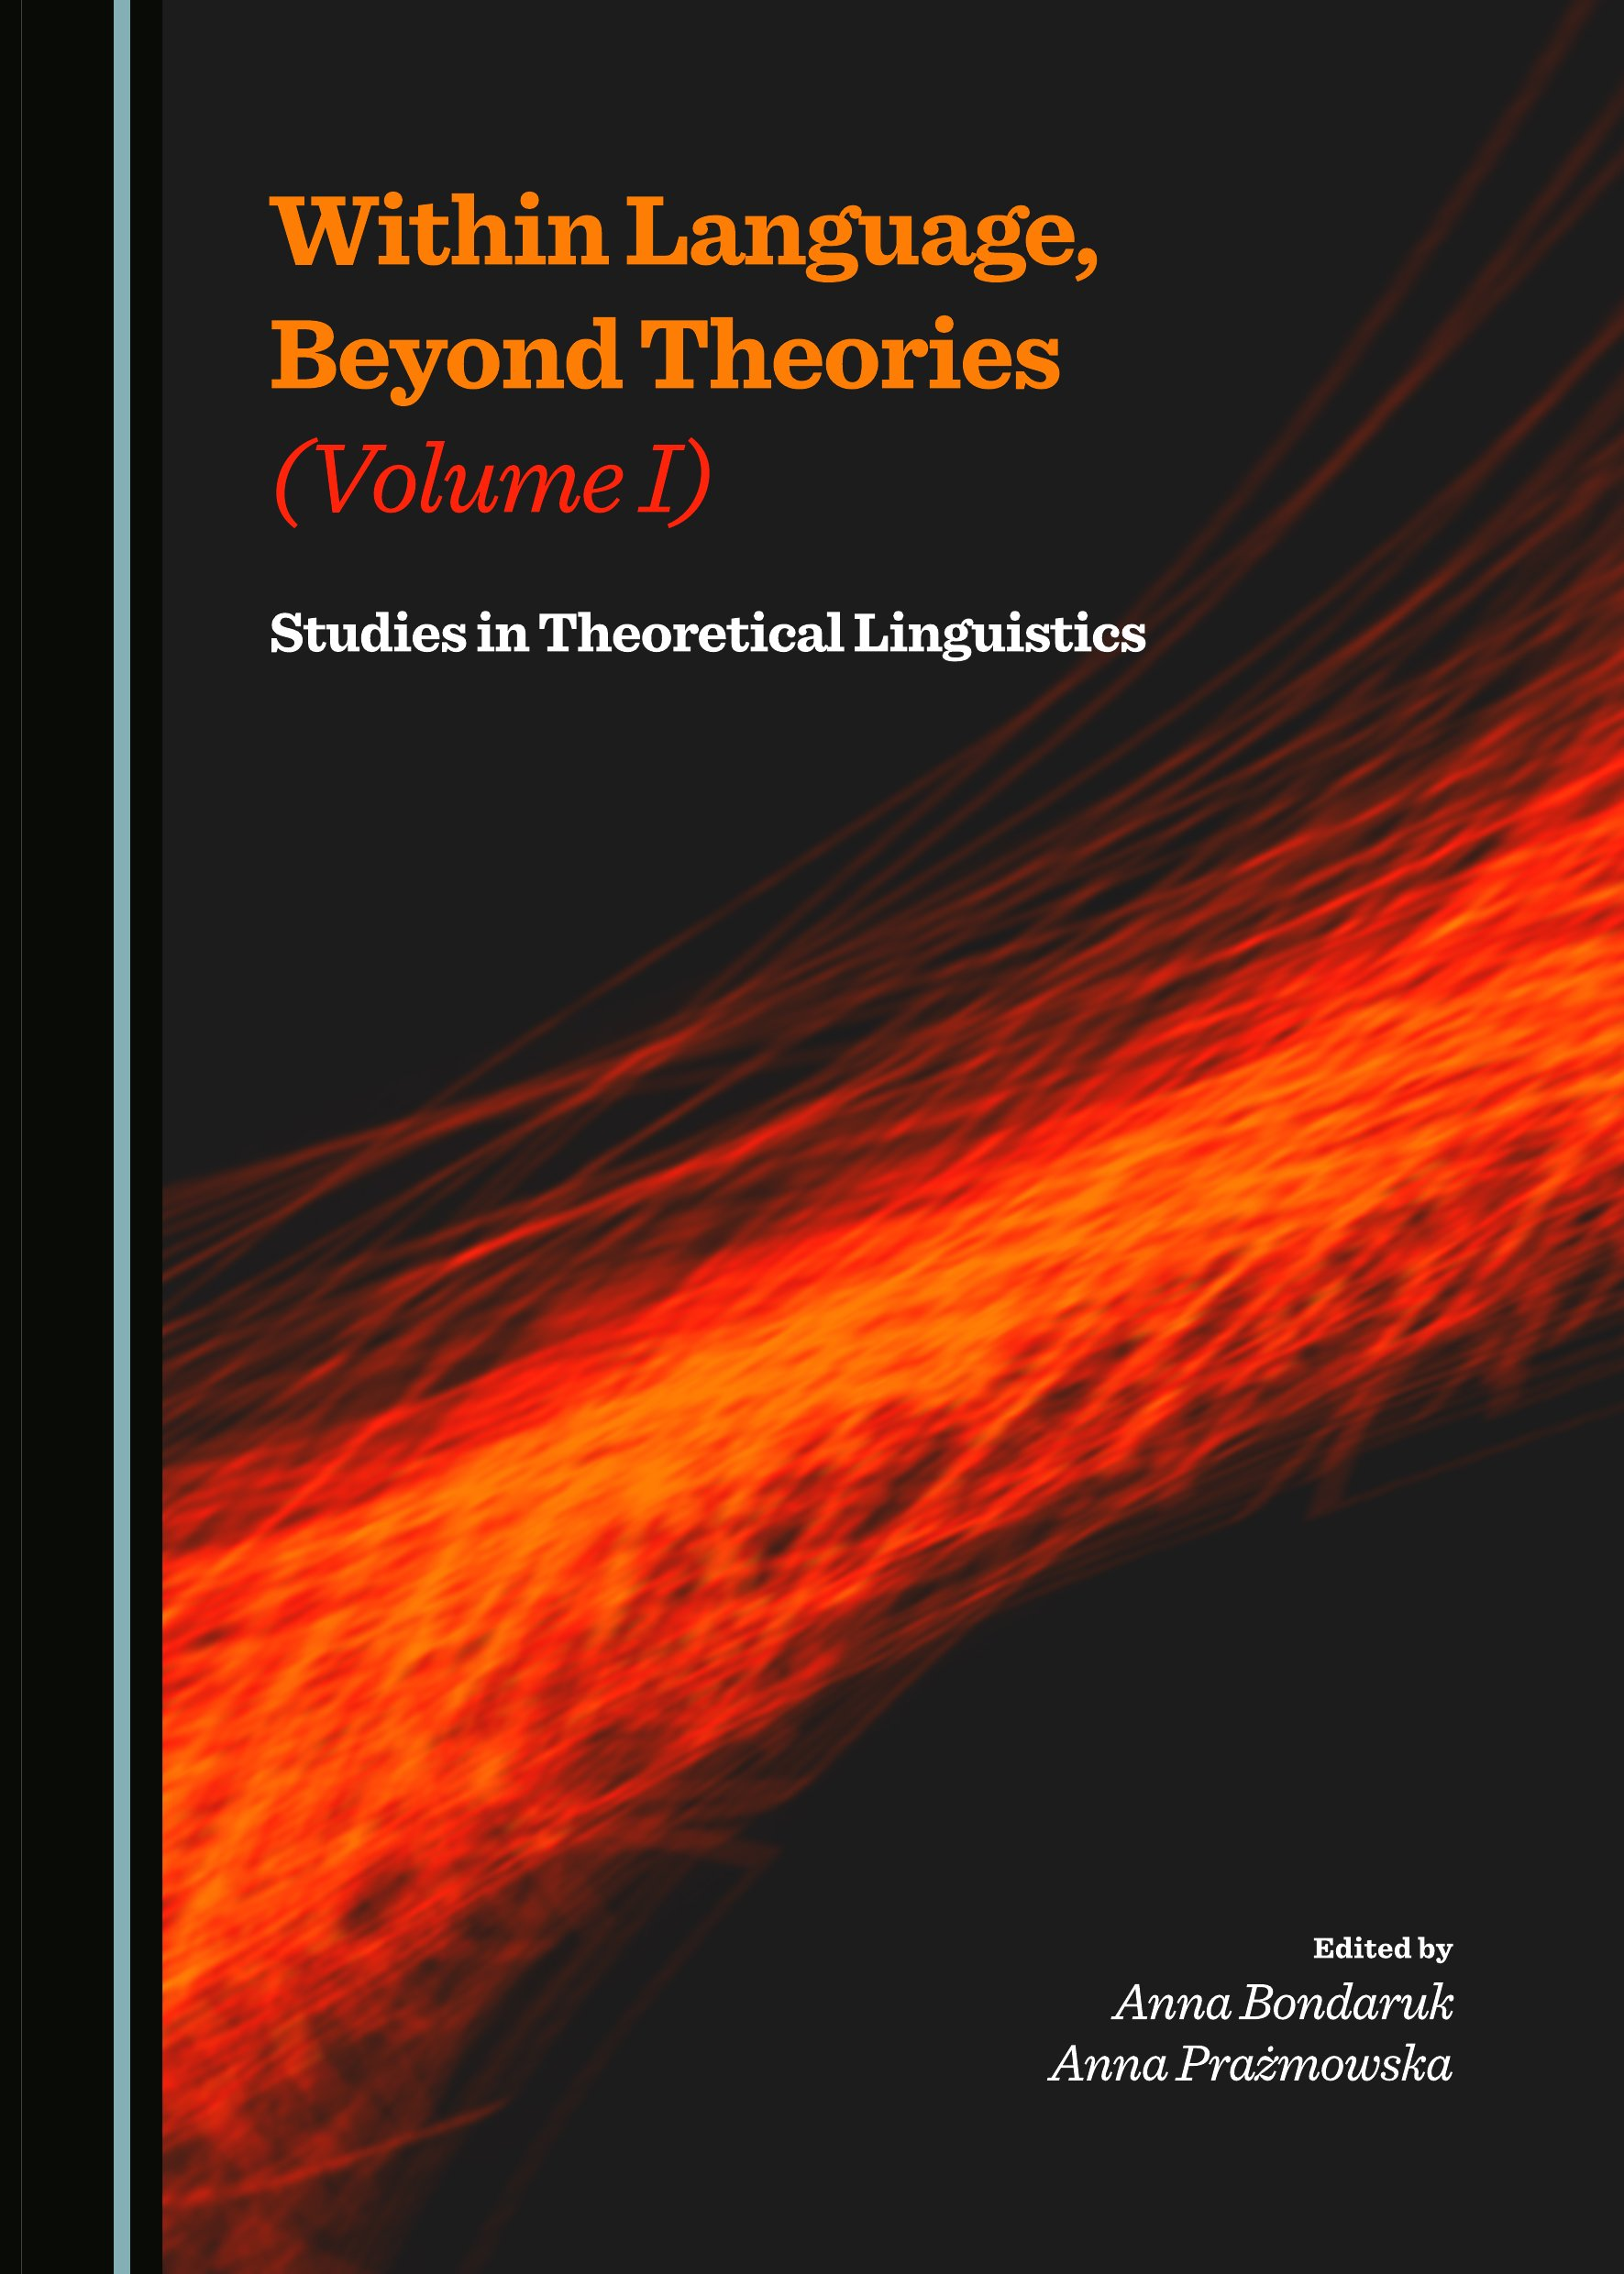 Within Language, Beyond Theories (Volume I): Studies in Theoretical Linguistics